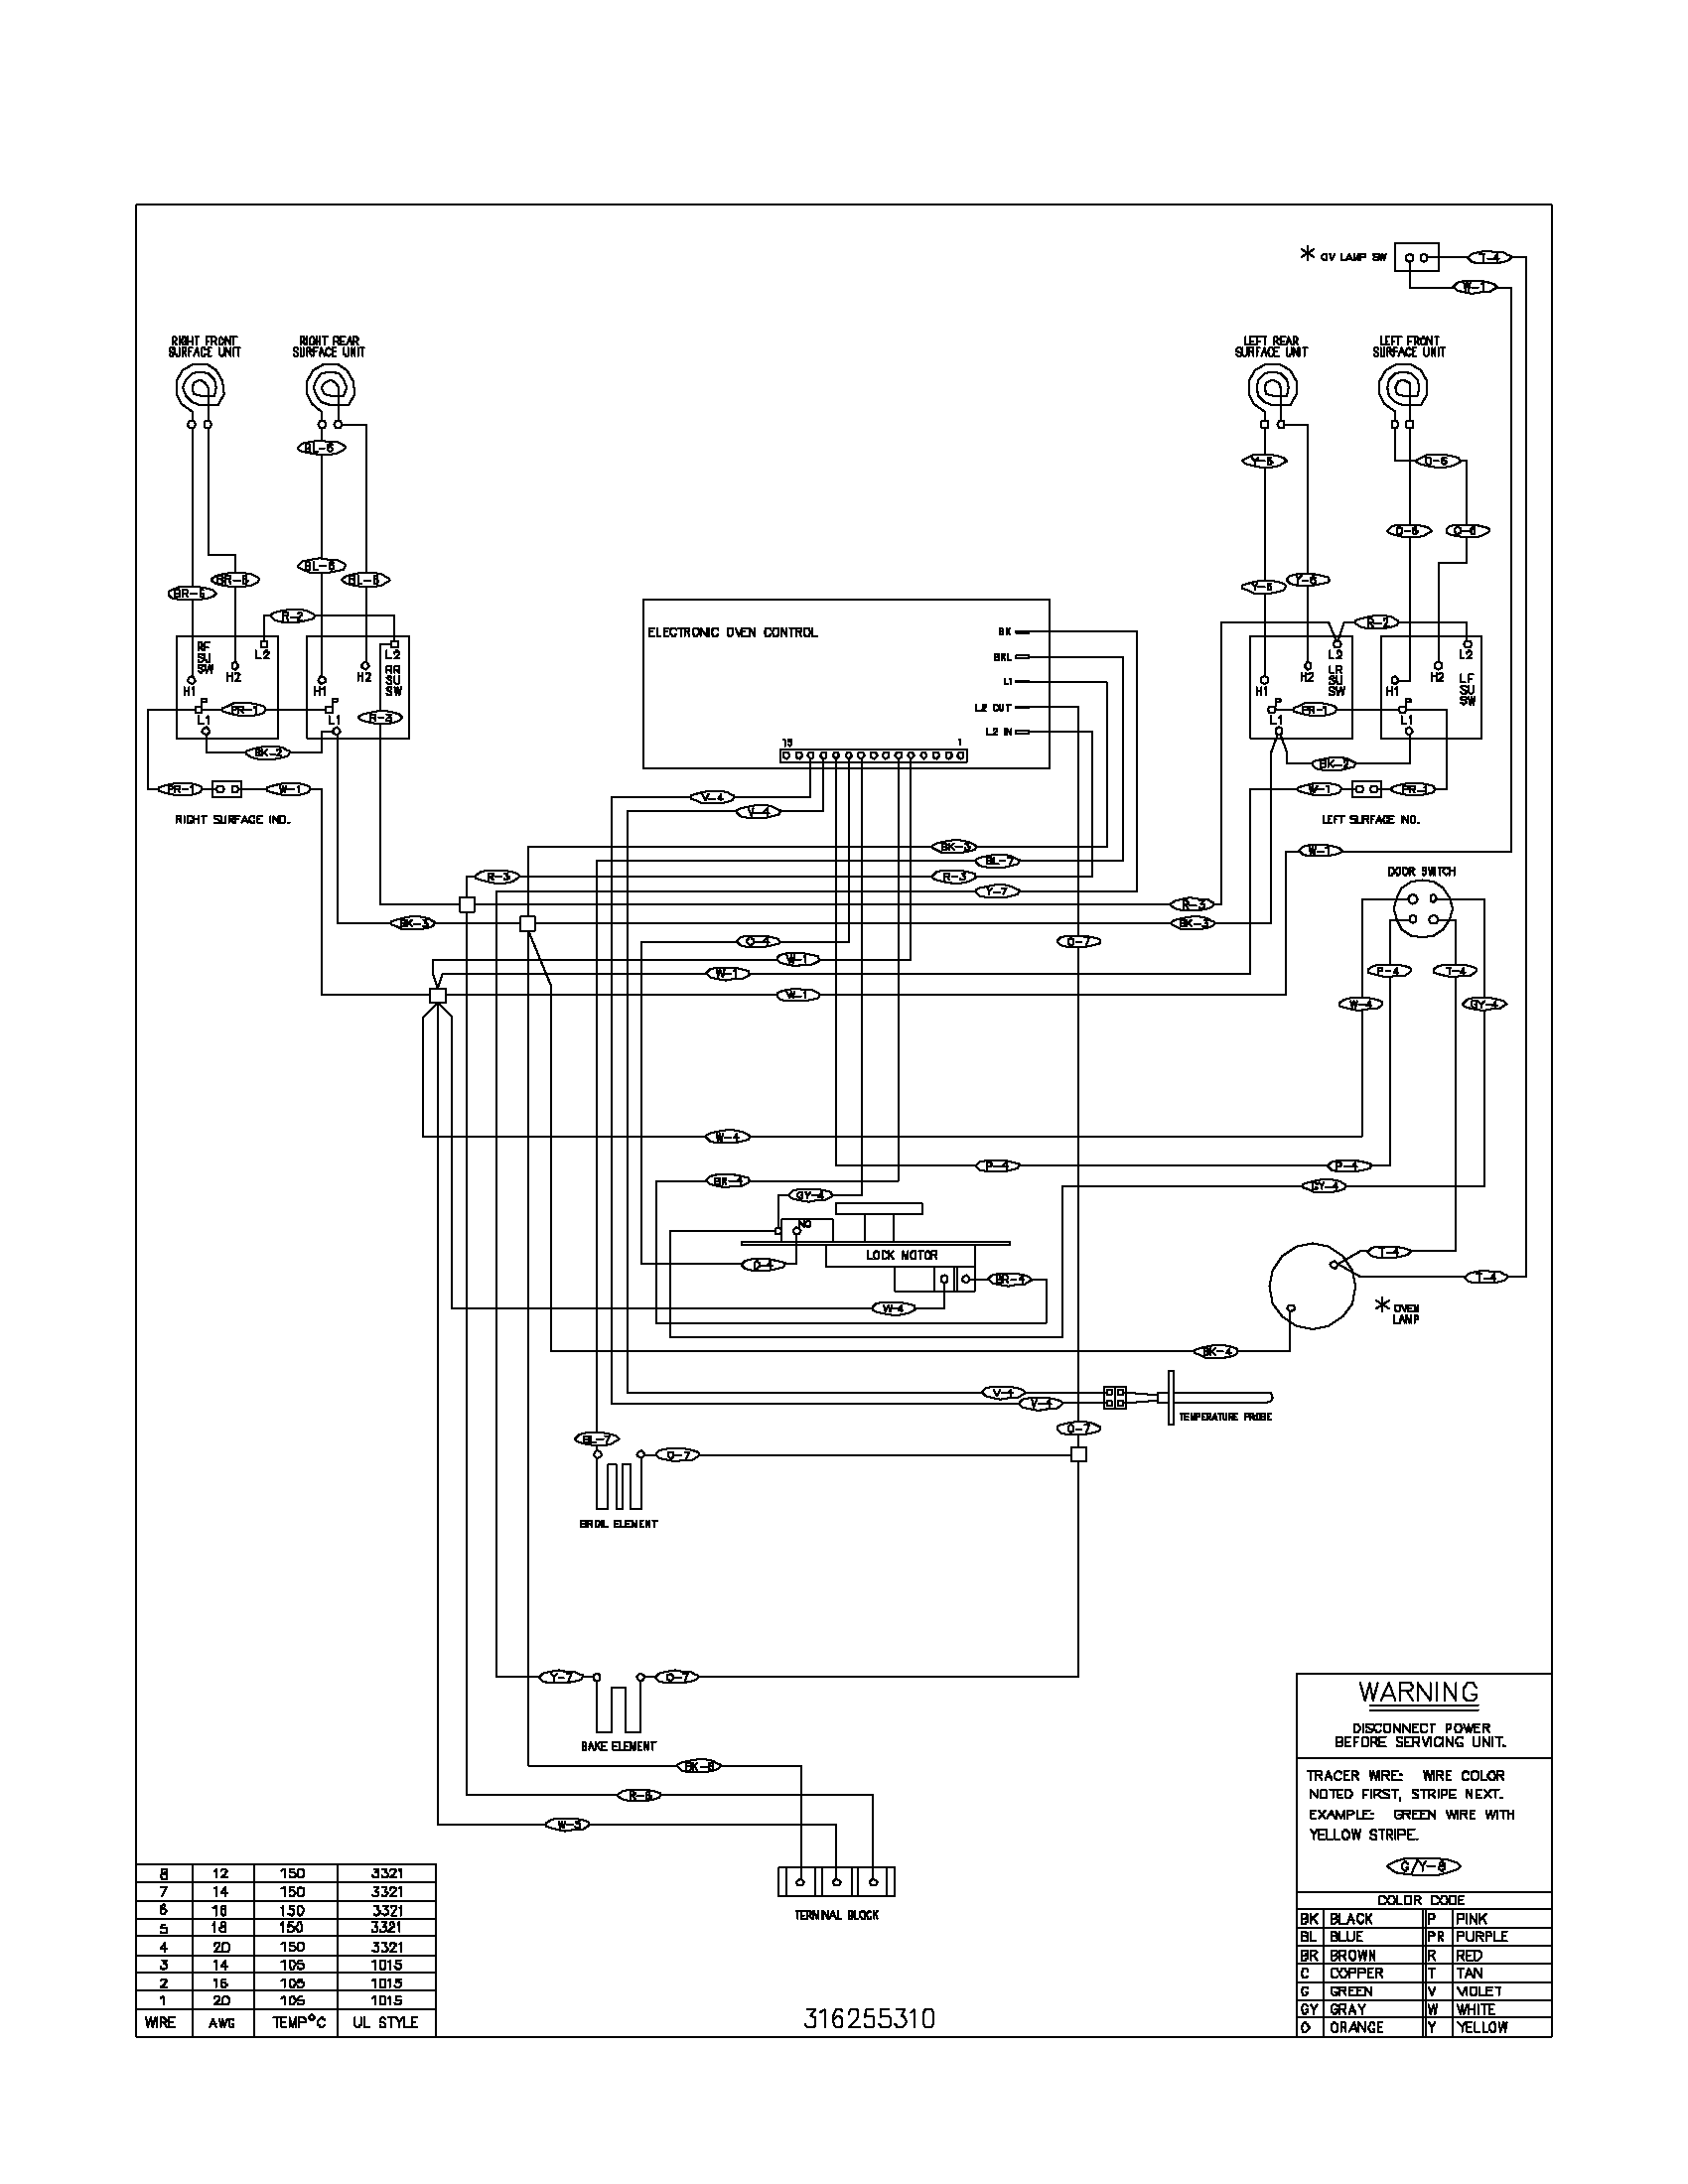 [DIAGRAM] Maytag Oven Wiring Diagram FULL Version HD